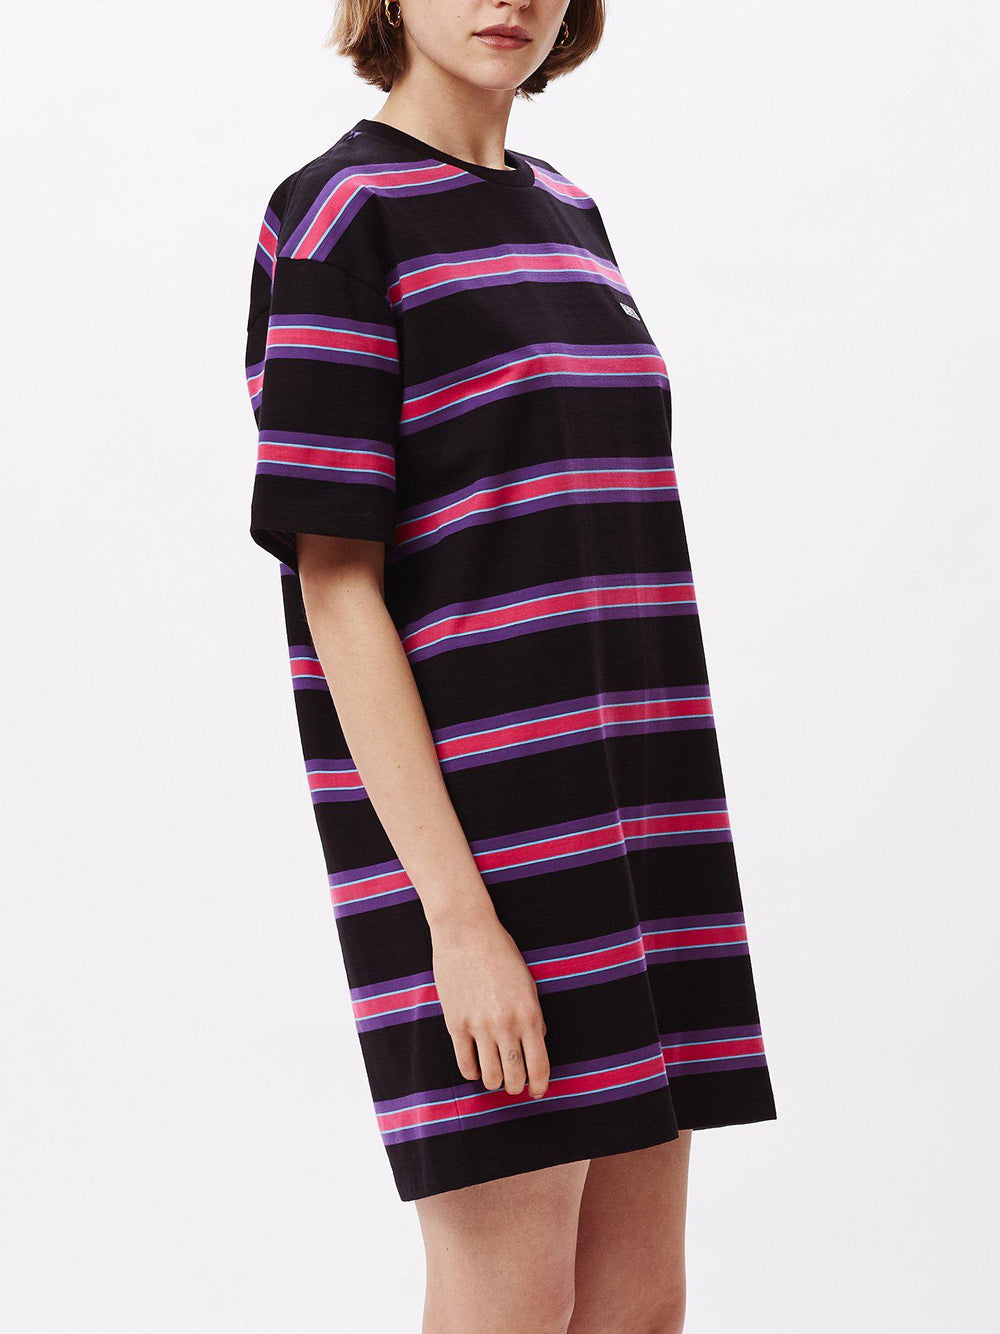 Obey Peri T-Shirt Dress-The Trendy Walrus